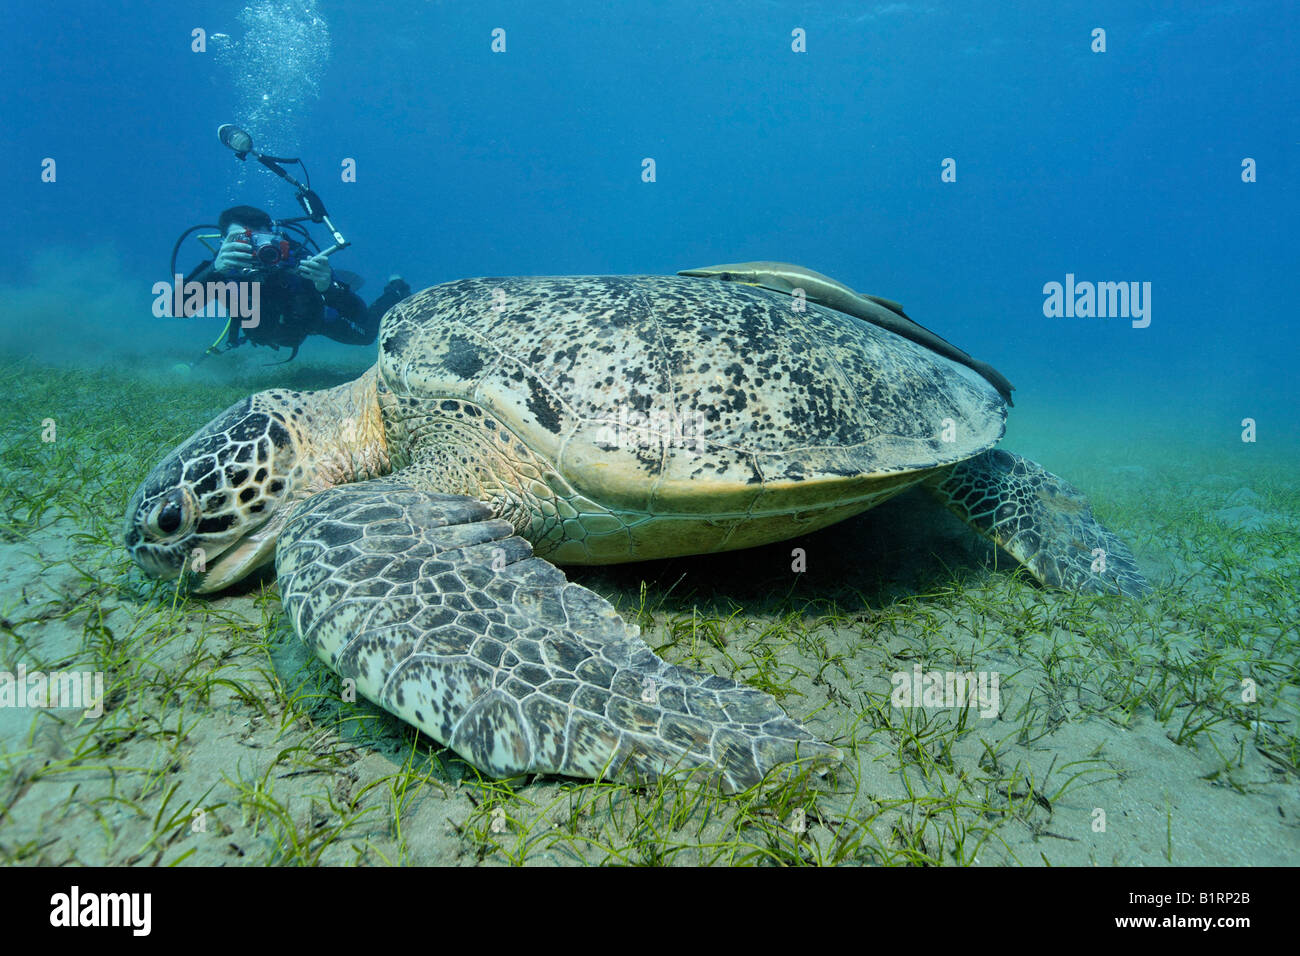 Underwater photographer taking a picture of a Green Sea Turtle (Chelonia mydas) with suckerfish, Hurghada, Red Sea, - Stock Image